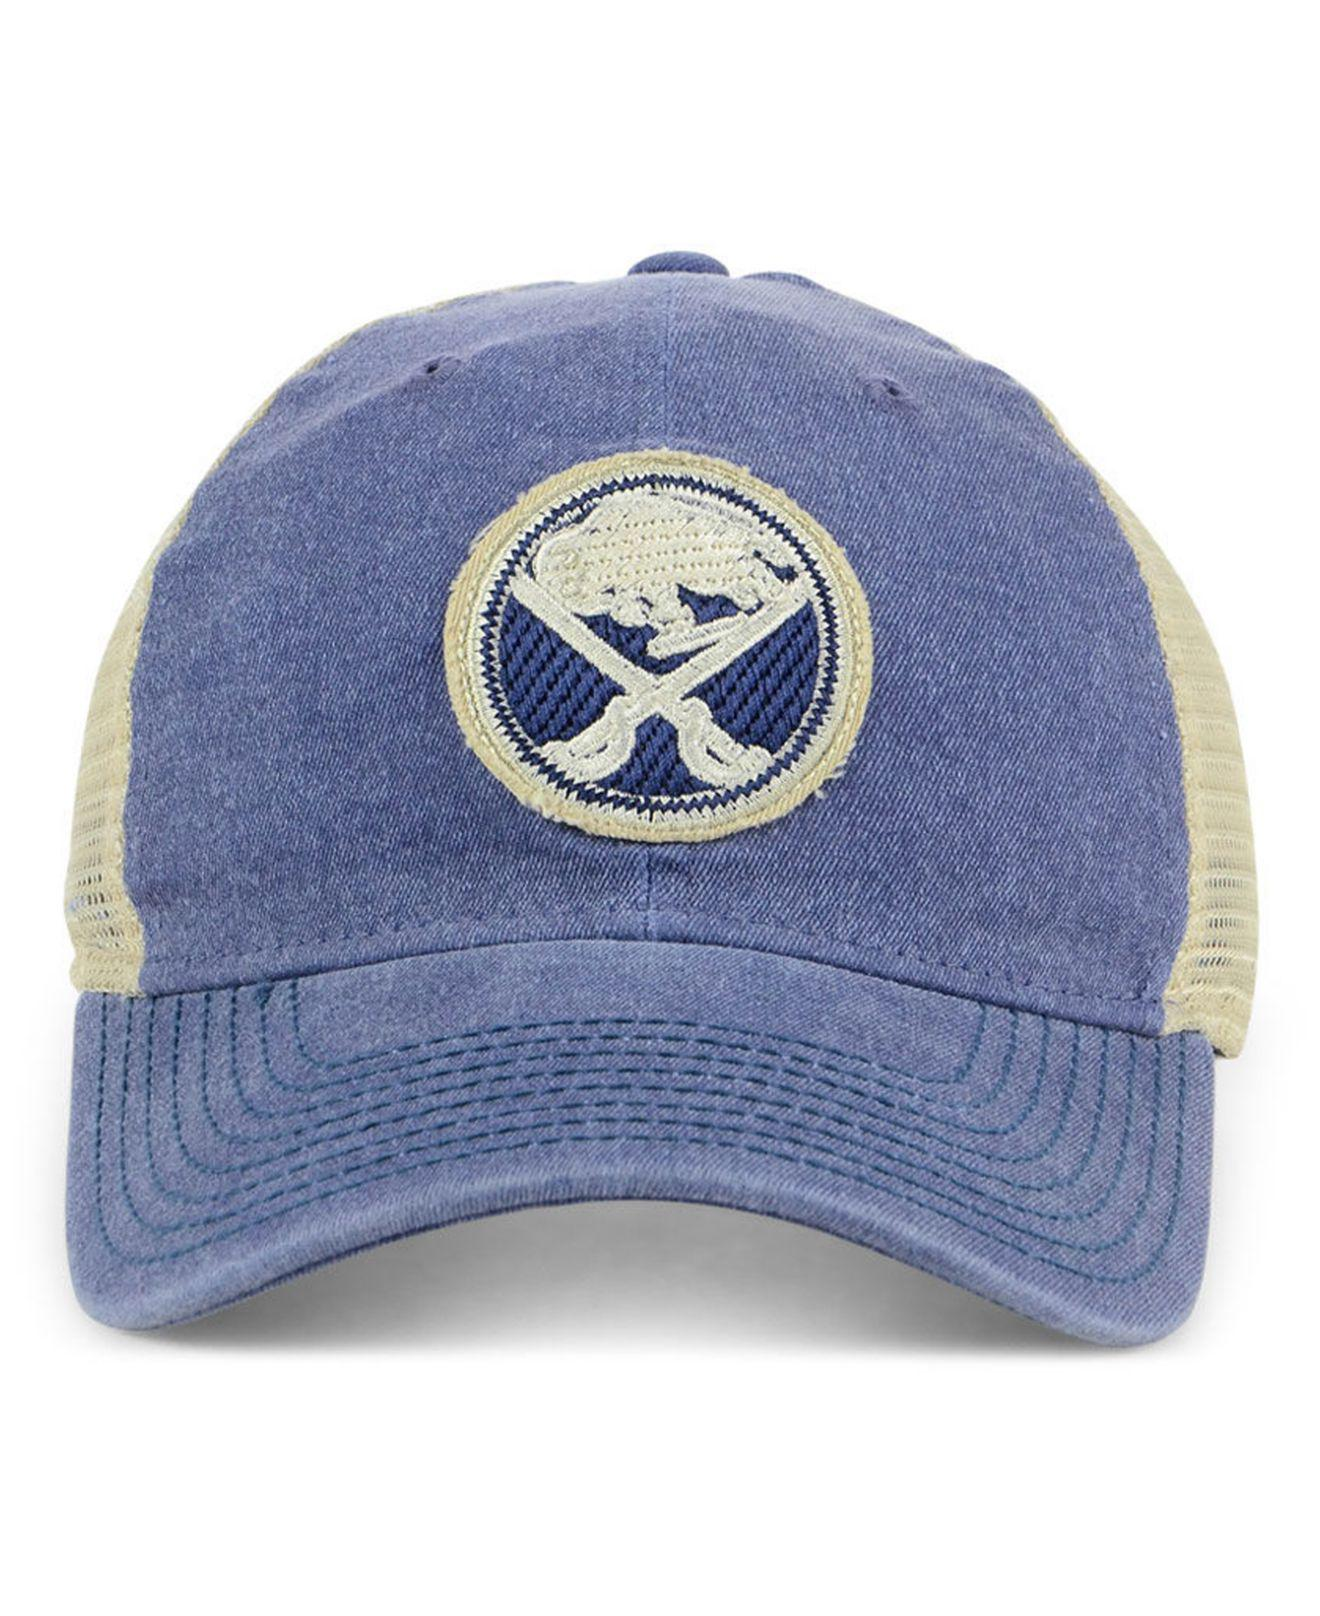 promo code 68db7 283ce ... france lyst adidas buffalo sabres sun bleached slouch cap in blue for  men 70b55 b4271